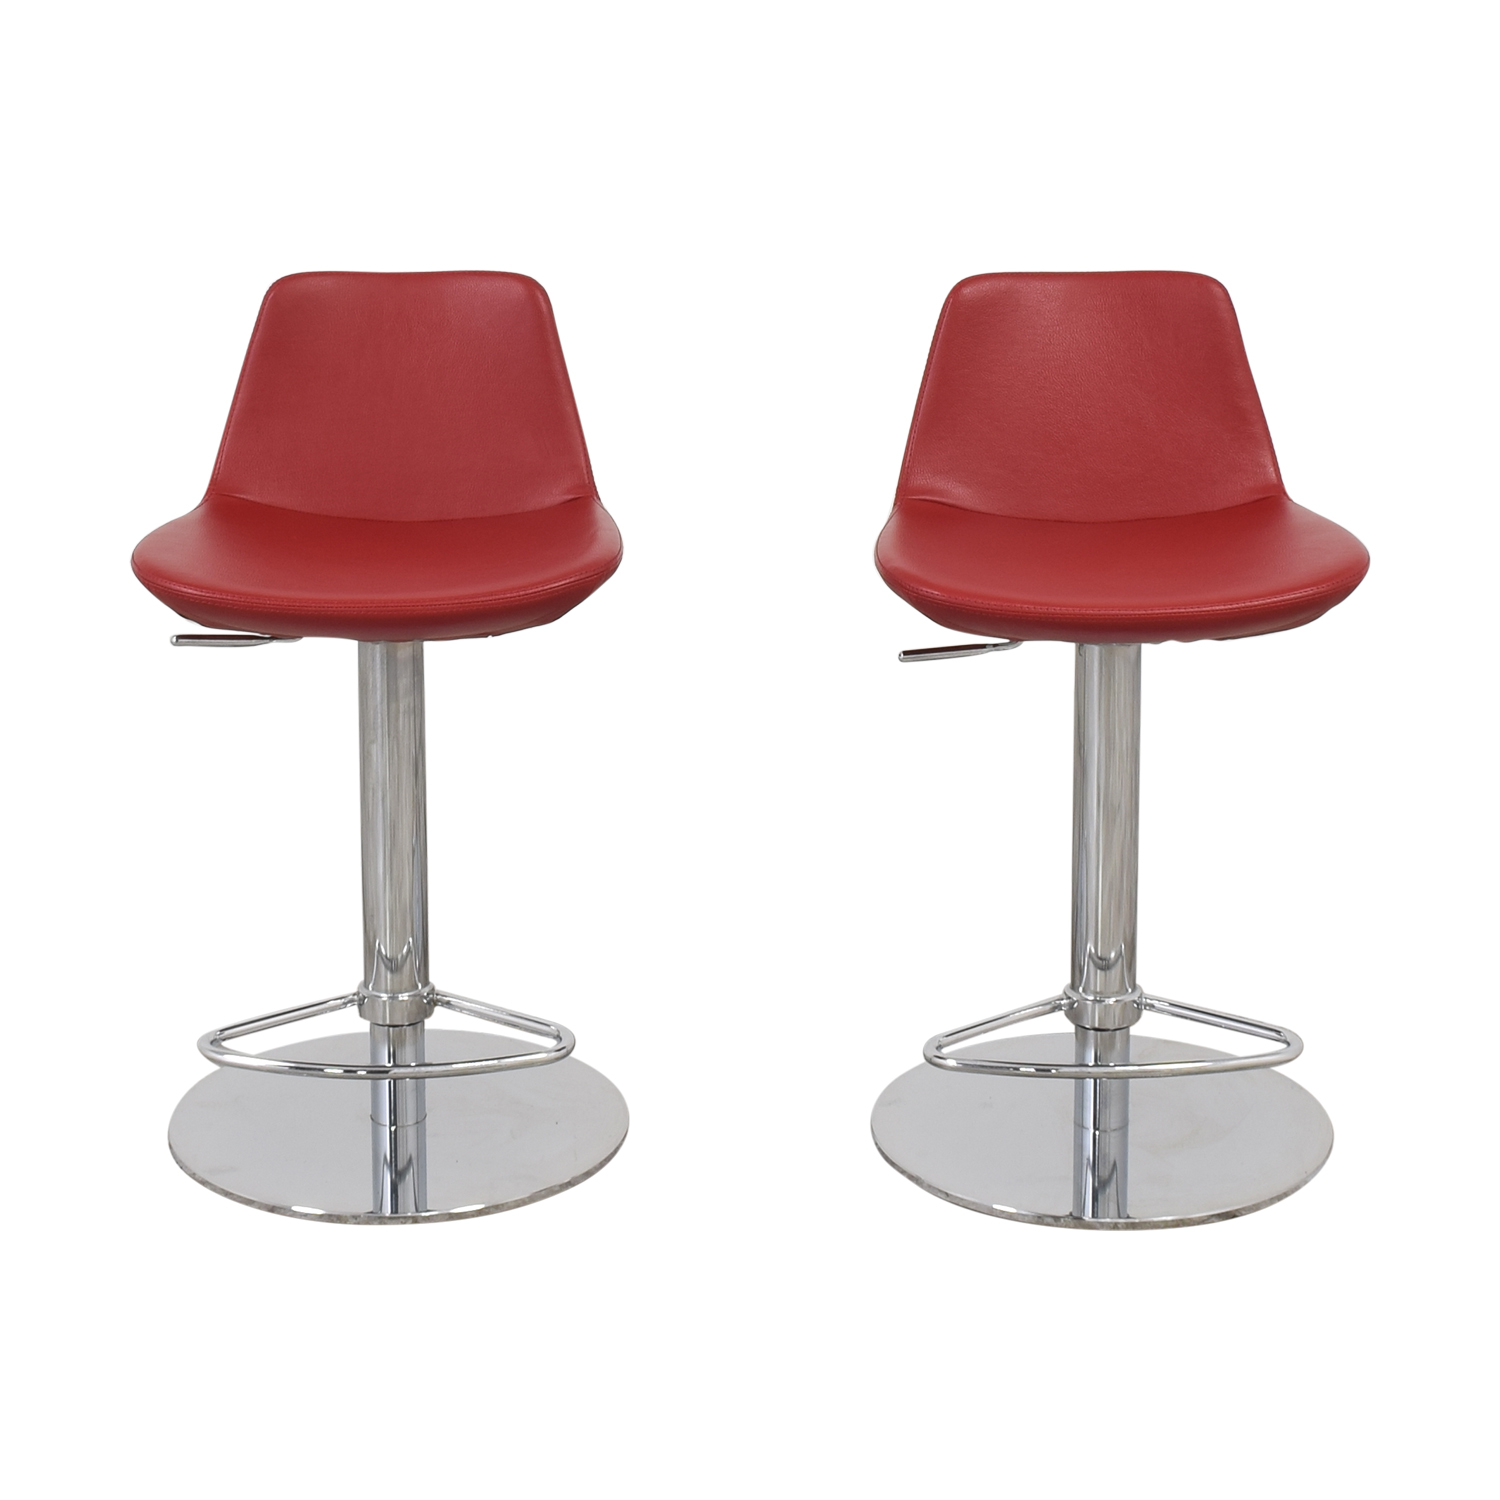 buy Lazzoni Red Leather Bar Stools Lazzoni Chairs